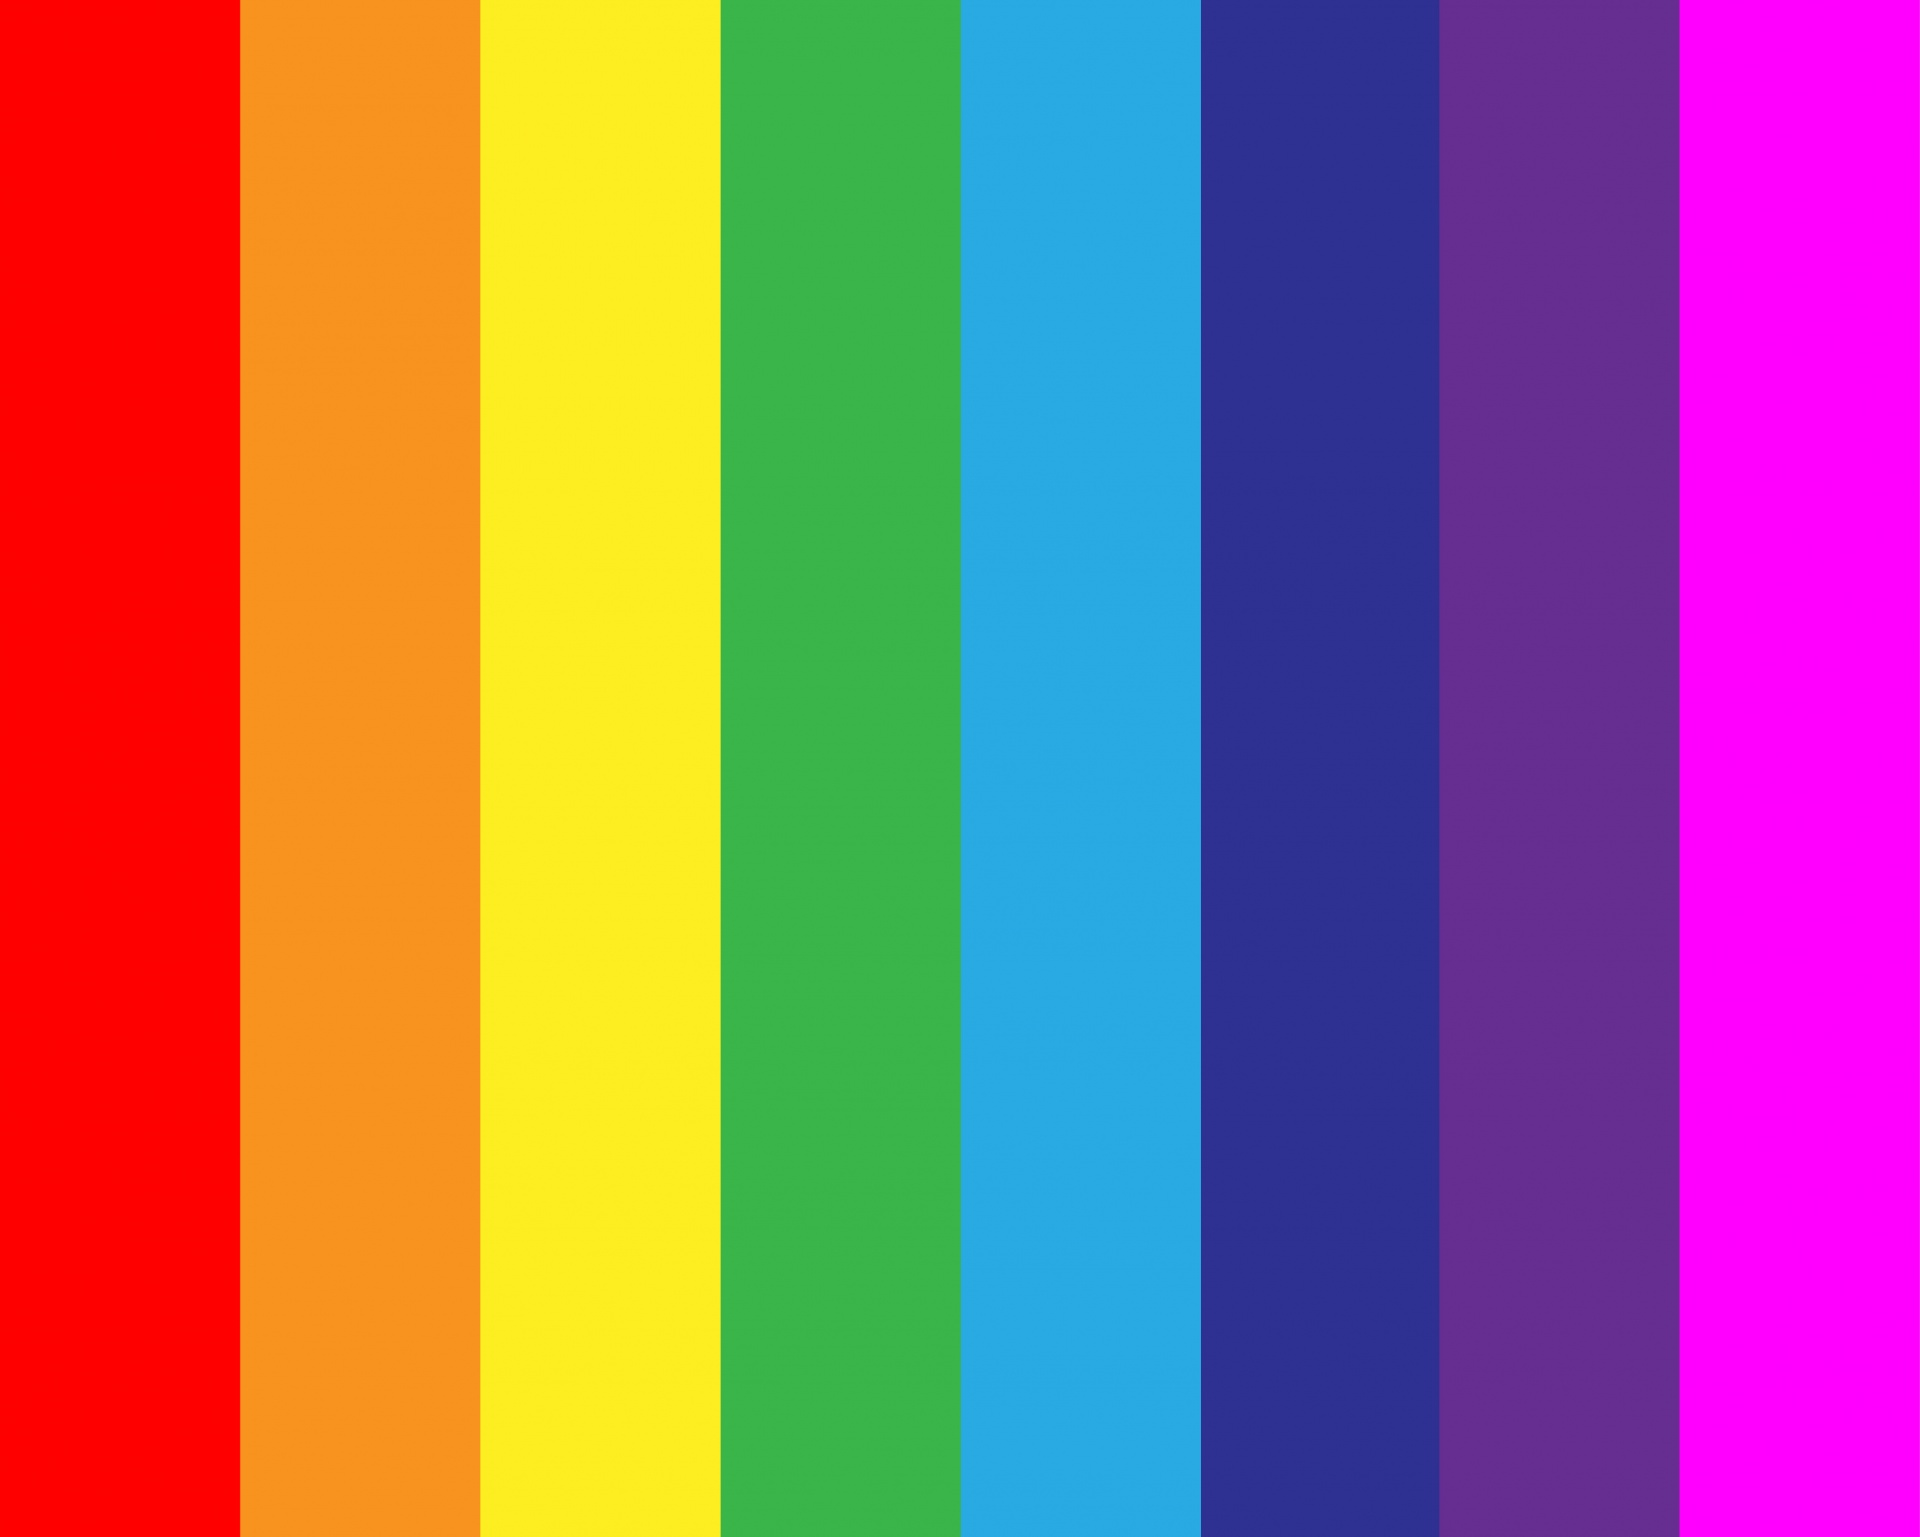 Rainbow Stripes Background Free Stock Photo - Public Domain Pictures